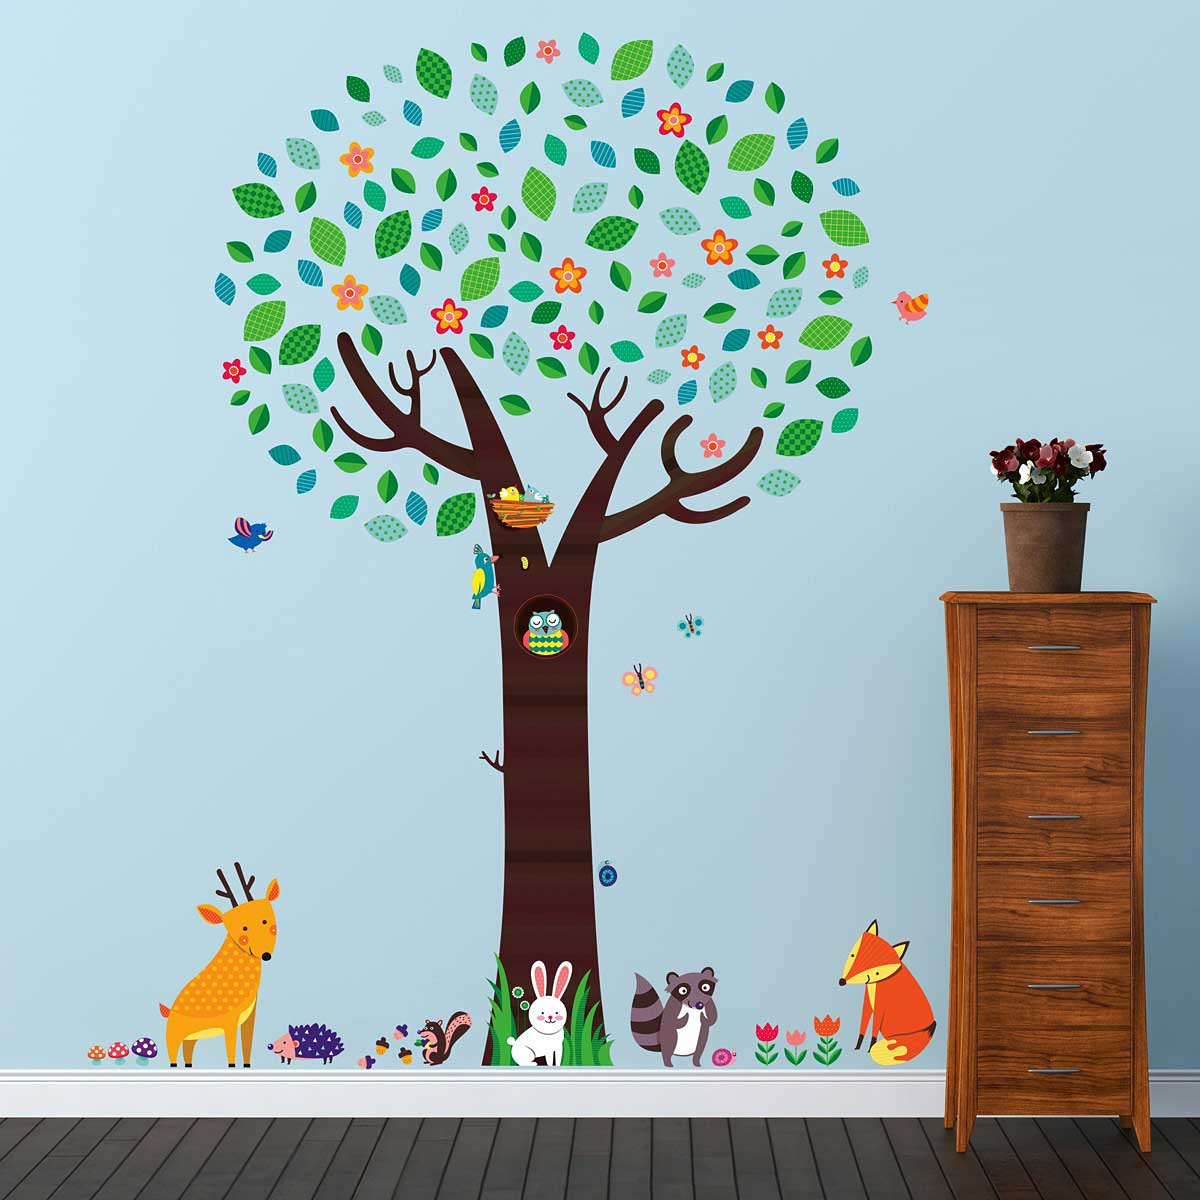 wandsticker gro er baum mit tieren des waldes wandsticker kinderzimmer. Black Bedroom Furniture Sets. Home Design Ideas